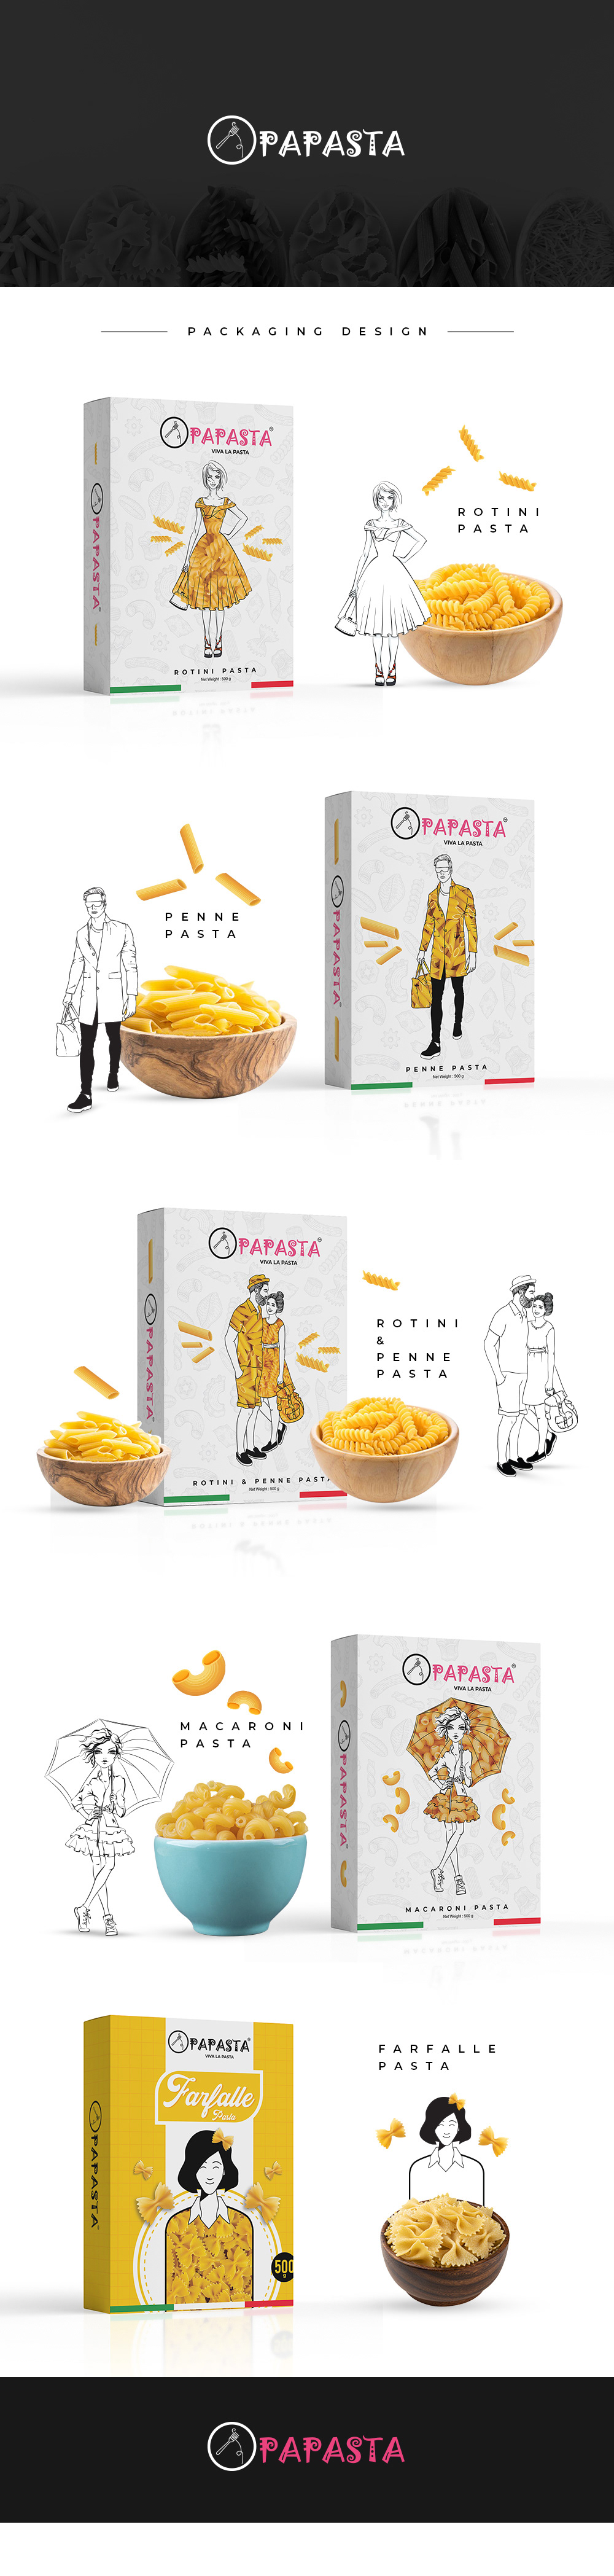 brandidentity design graphicdesigner package Packaging packagingdesign product